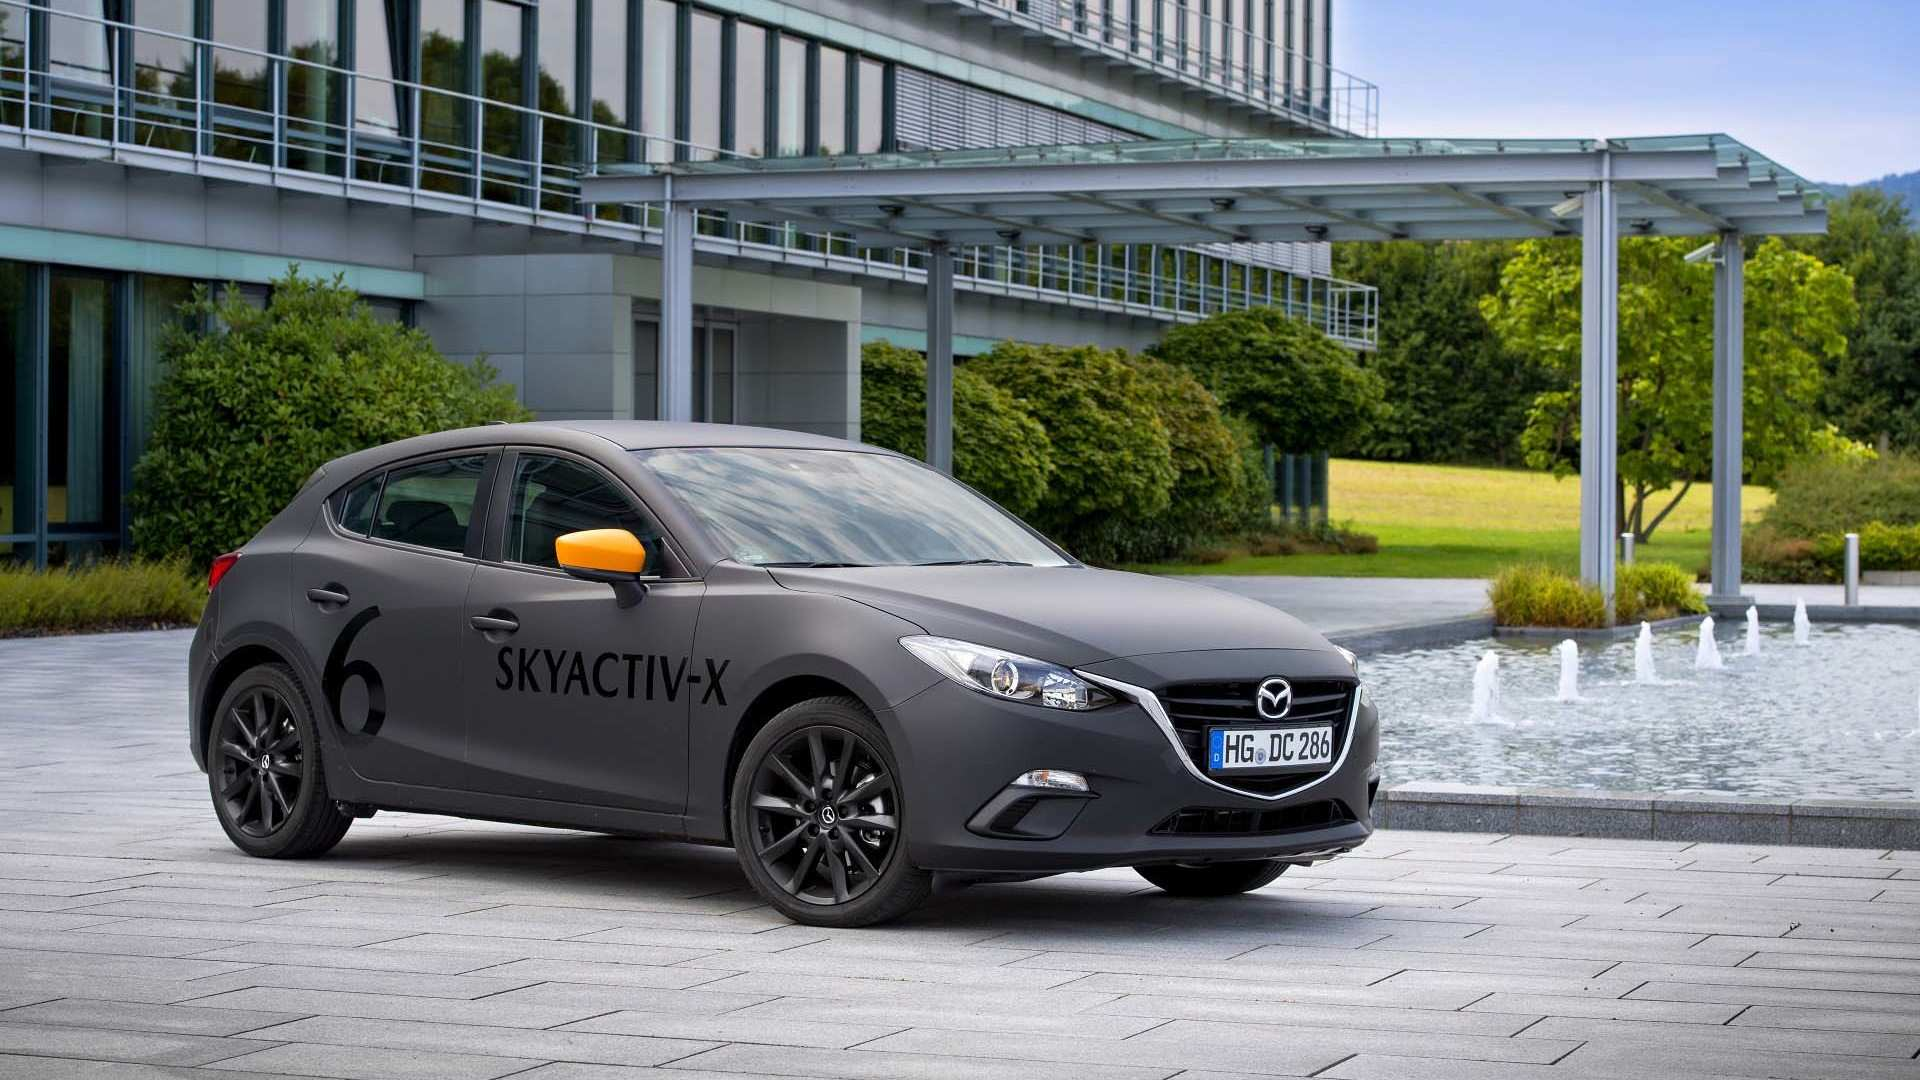 62 New 2020 Mazda 3 Hatchback Specs And Review